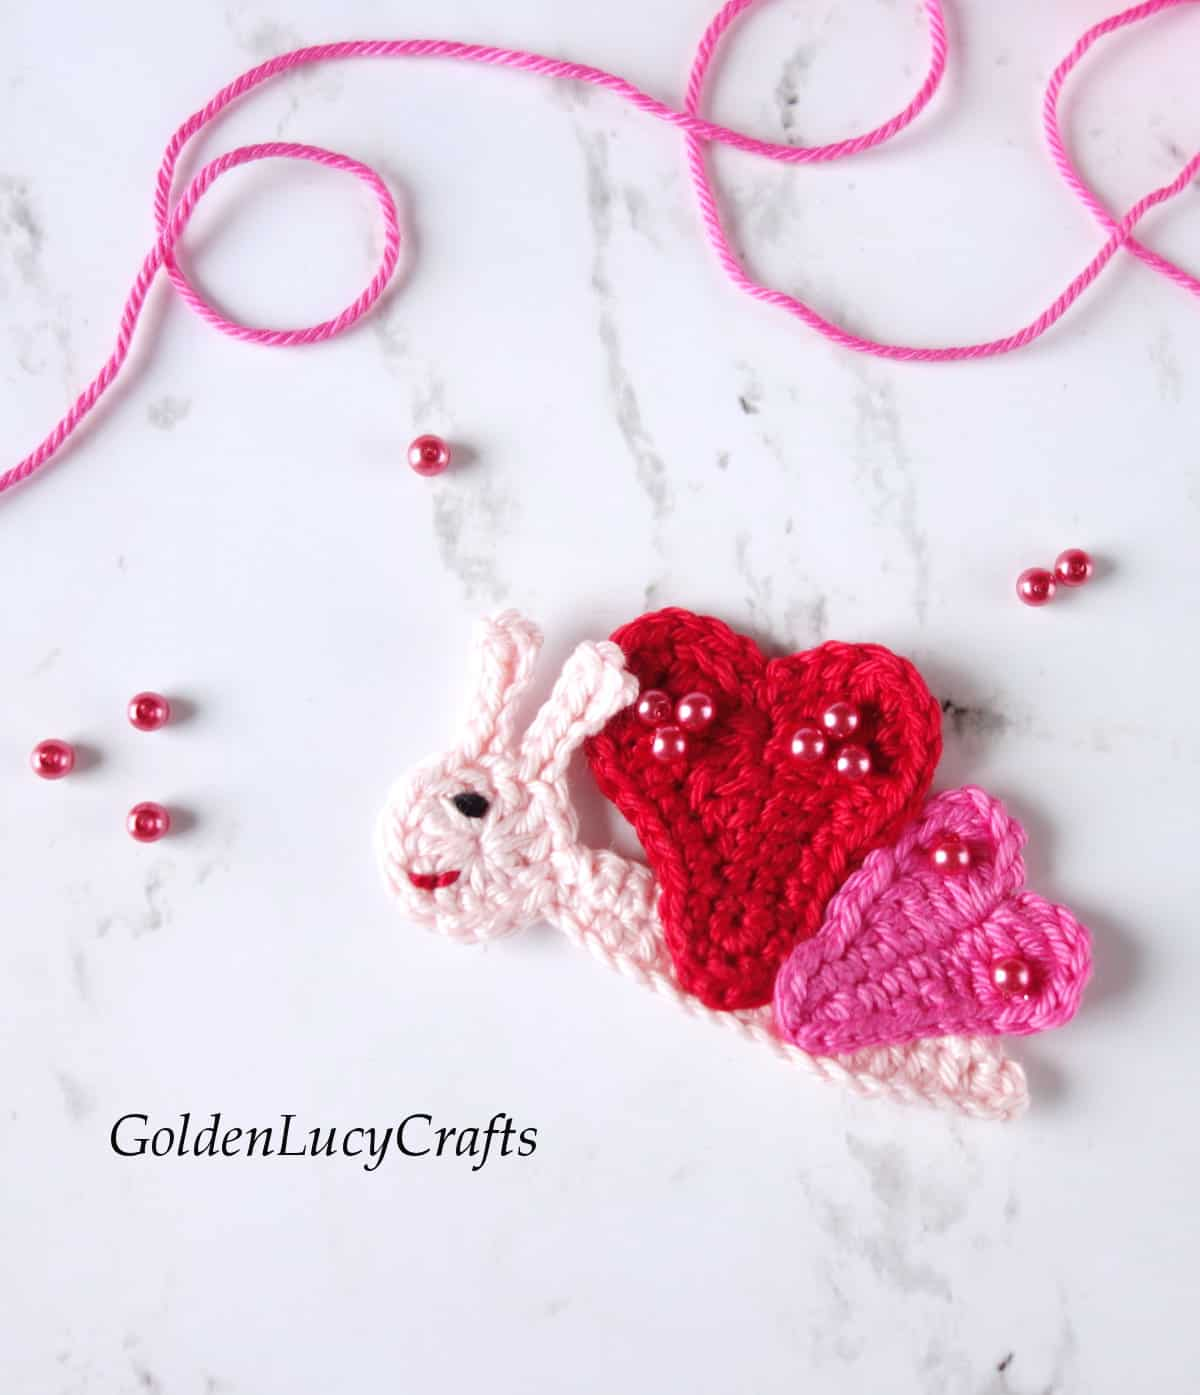 Crochet butterfly applique in pink and red color with heart-shaped wings.